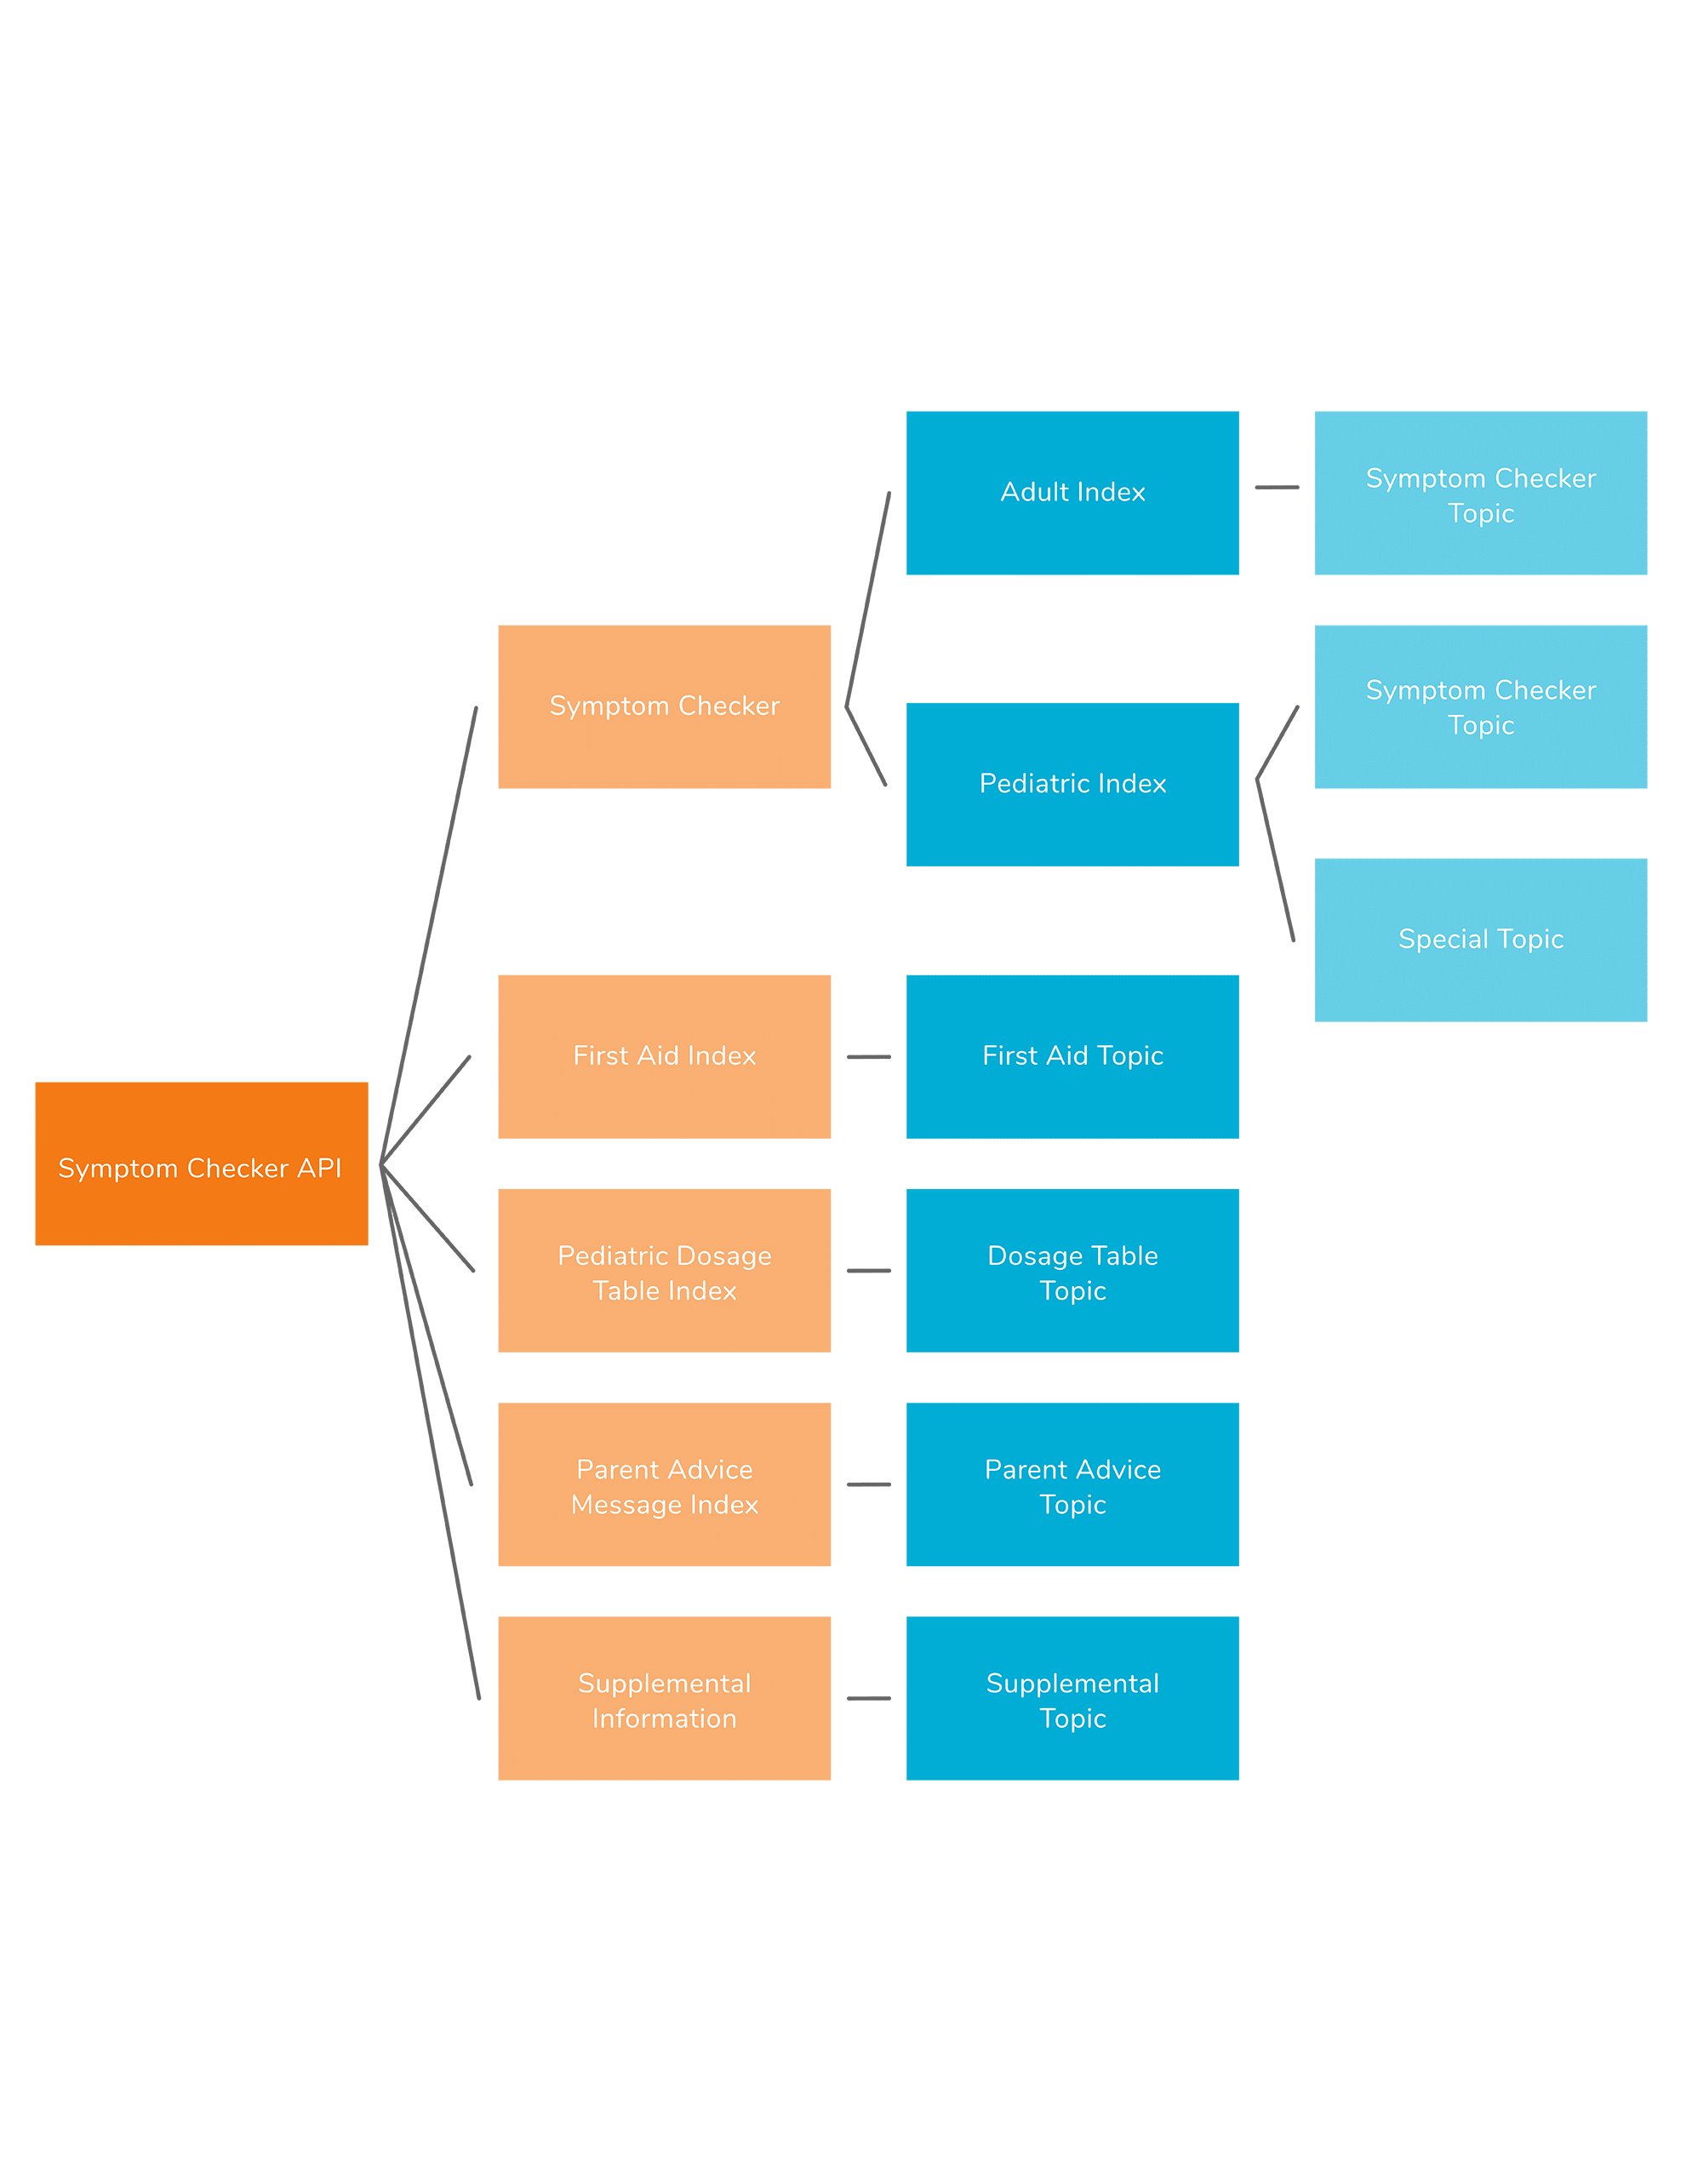 Infographic depicting the workflow of the Symptom Checker API and self-care apps